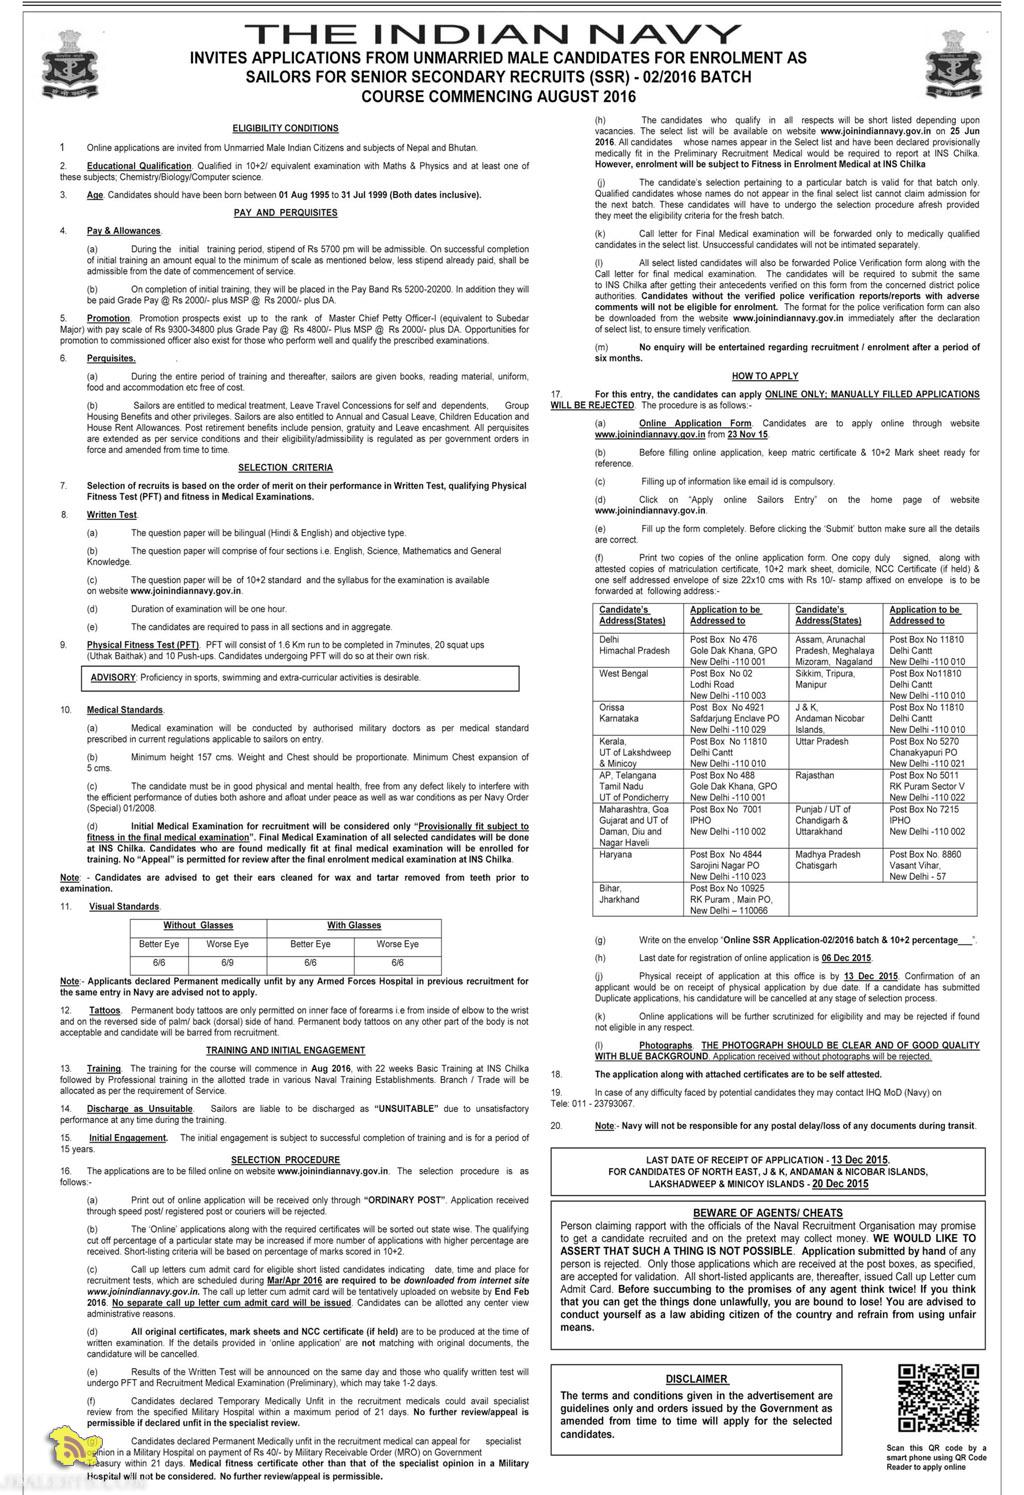 JOIN INDIAN NAVY AS SAILORS FOR SENIOR SECONDARY RECRUITS (SSR)